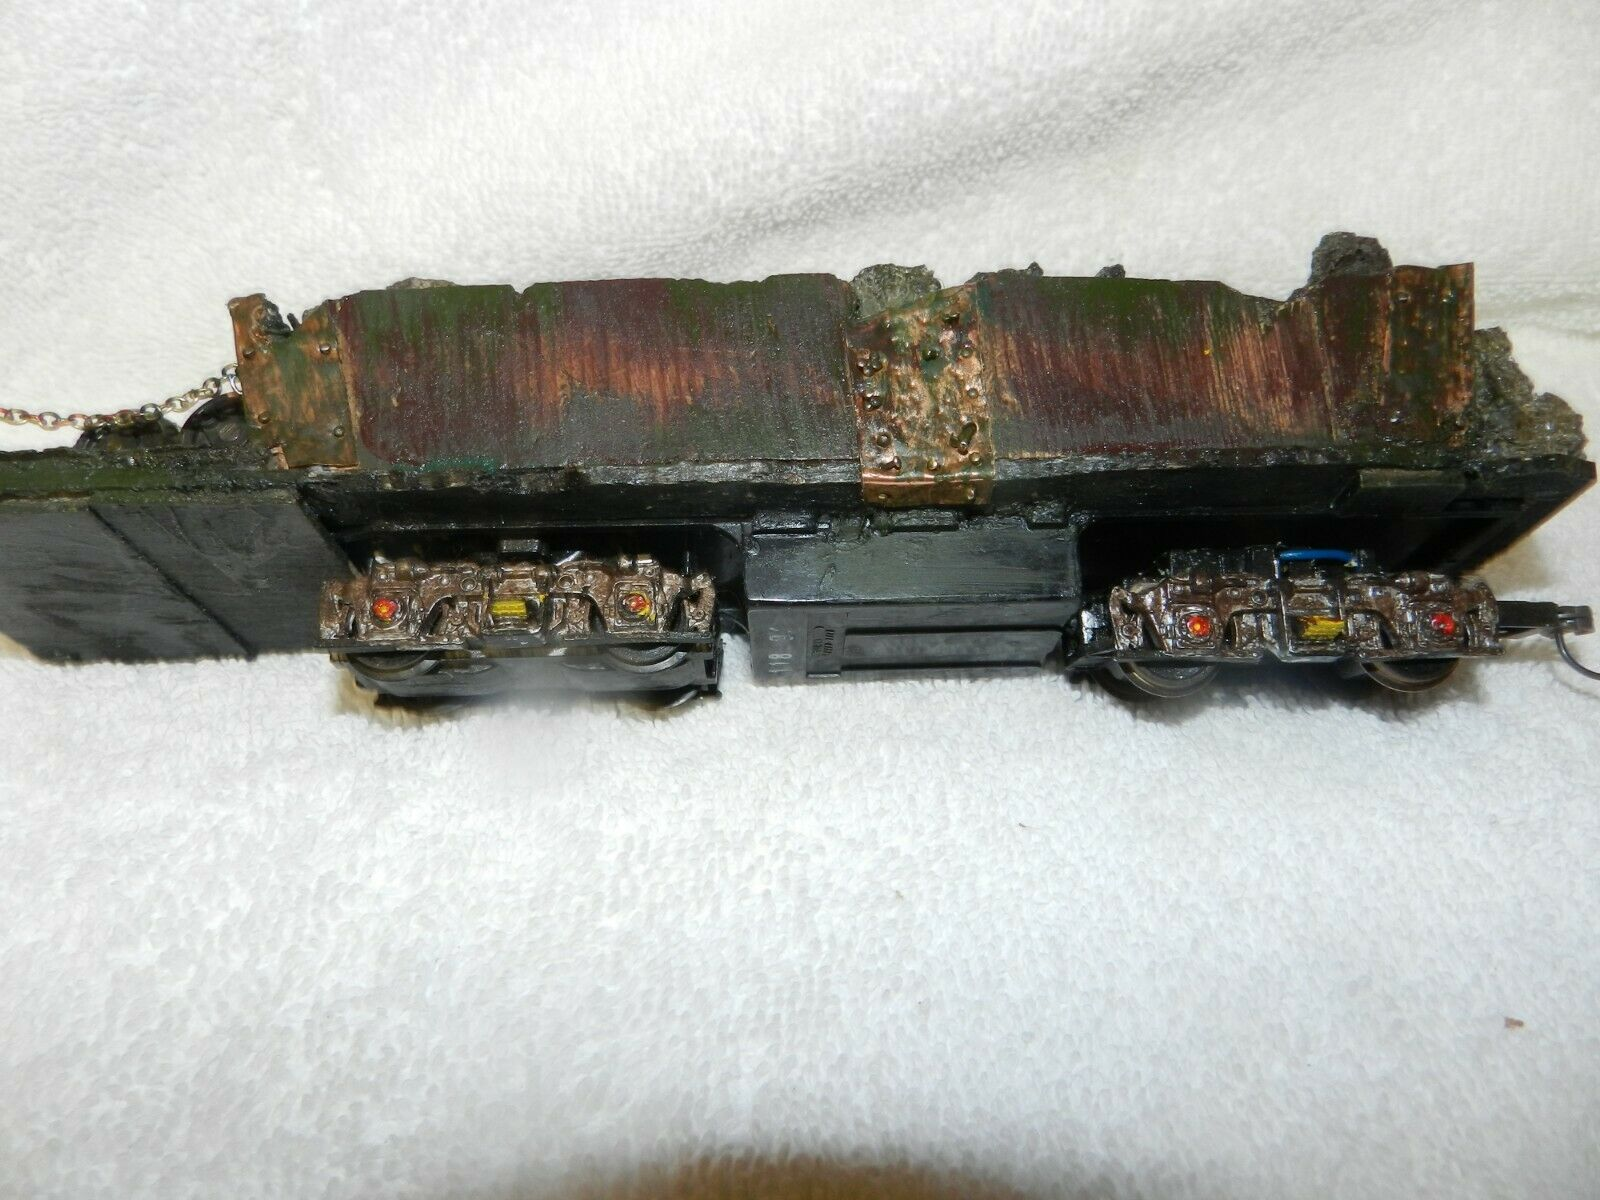 J & L HOT SLAG CAR MOTORIZED WITH  GLOWING EMBER - On 30  SCALE - ONE OF A KIND